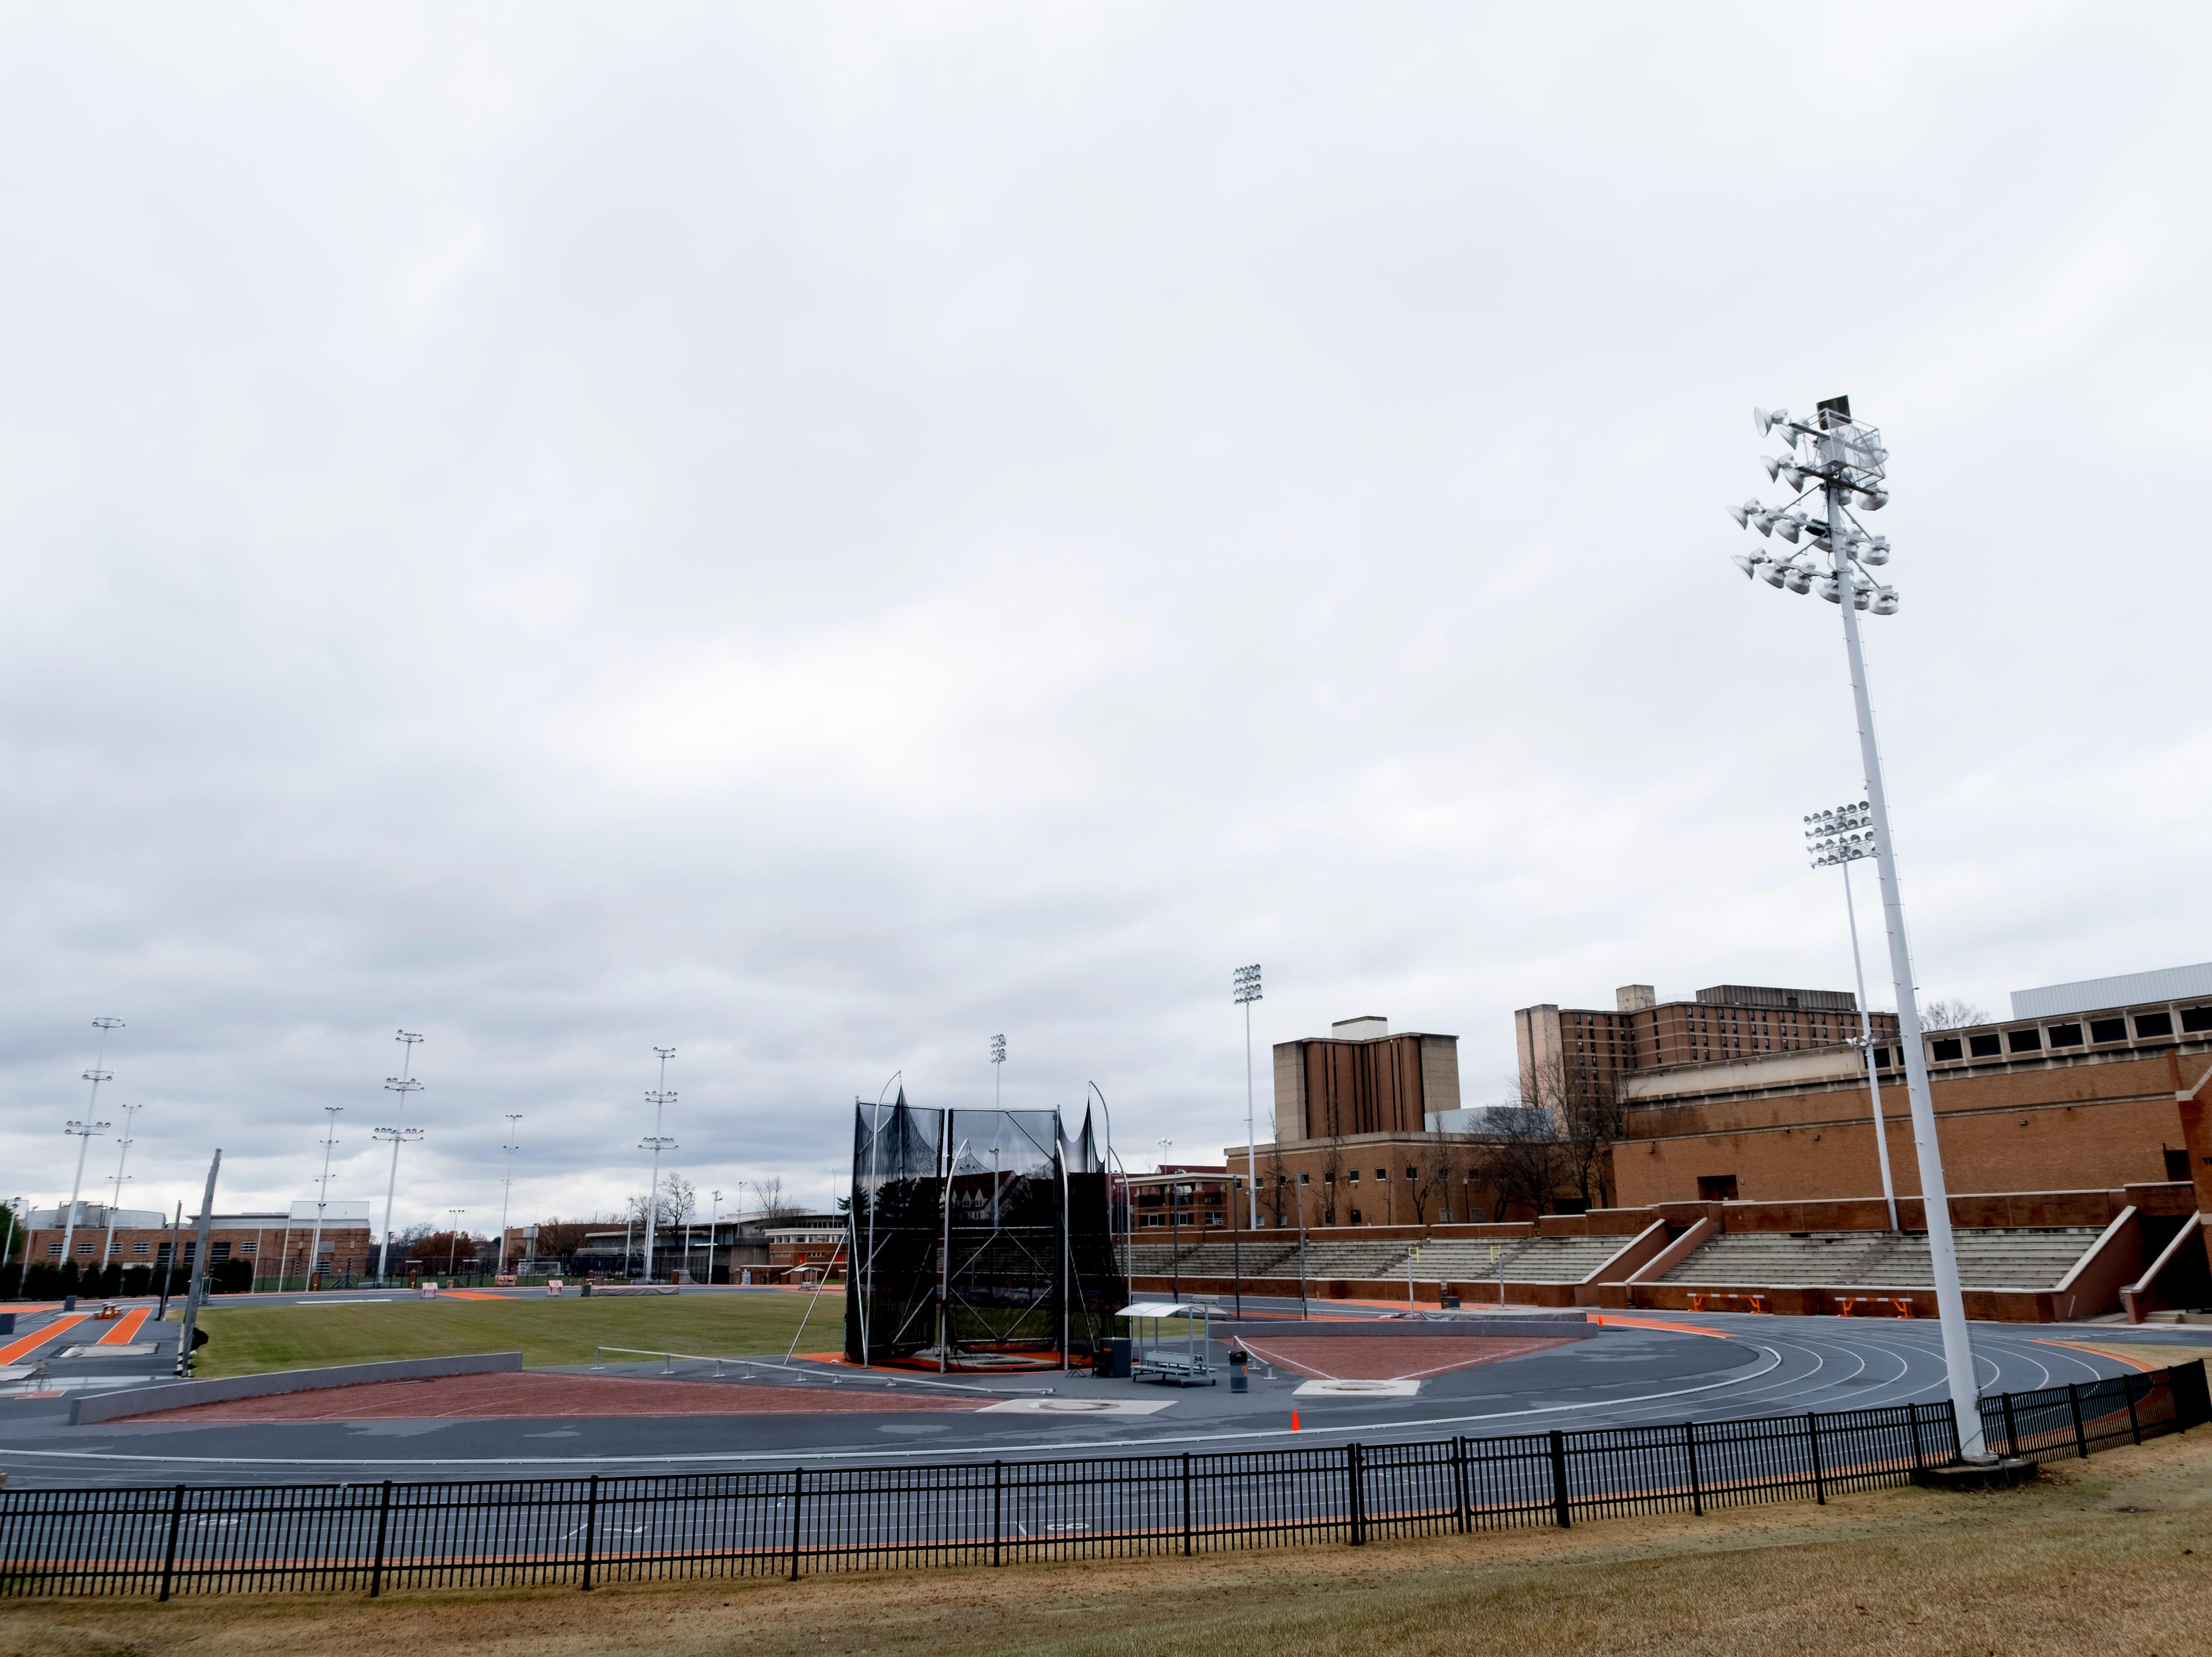 Tom Baclm Track at LaPorte Stadium on the University of Tennessee campus in Knoxville, Tennessee on Tuesday, January 1, 2019.